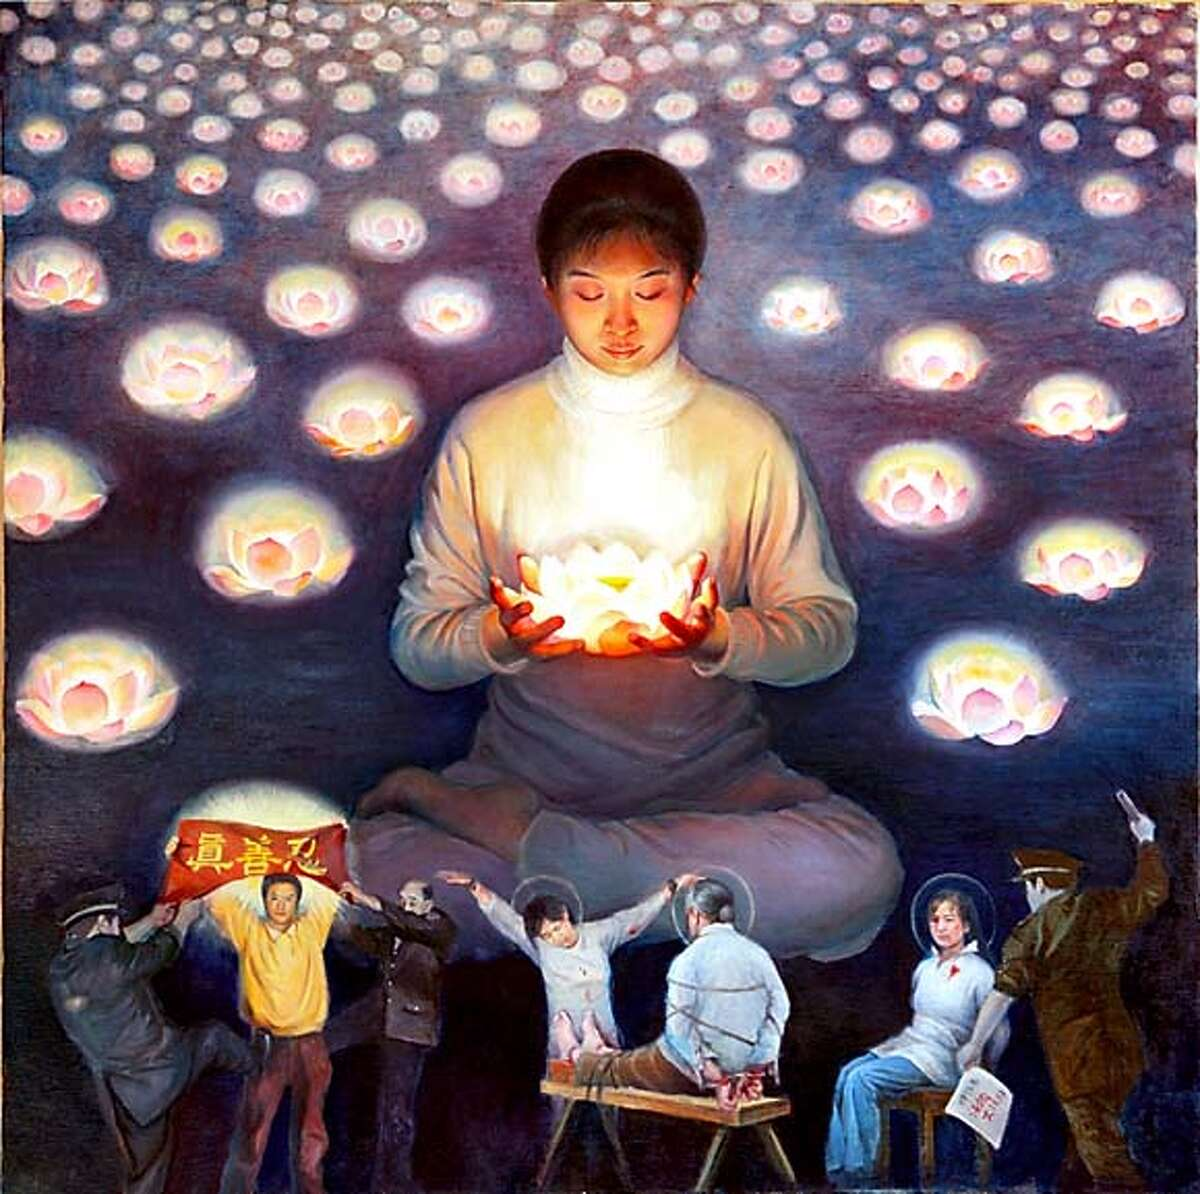 title: lotus candle artist: xiao ping type: oil on canvas